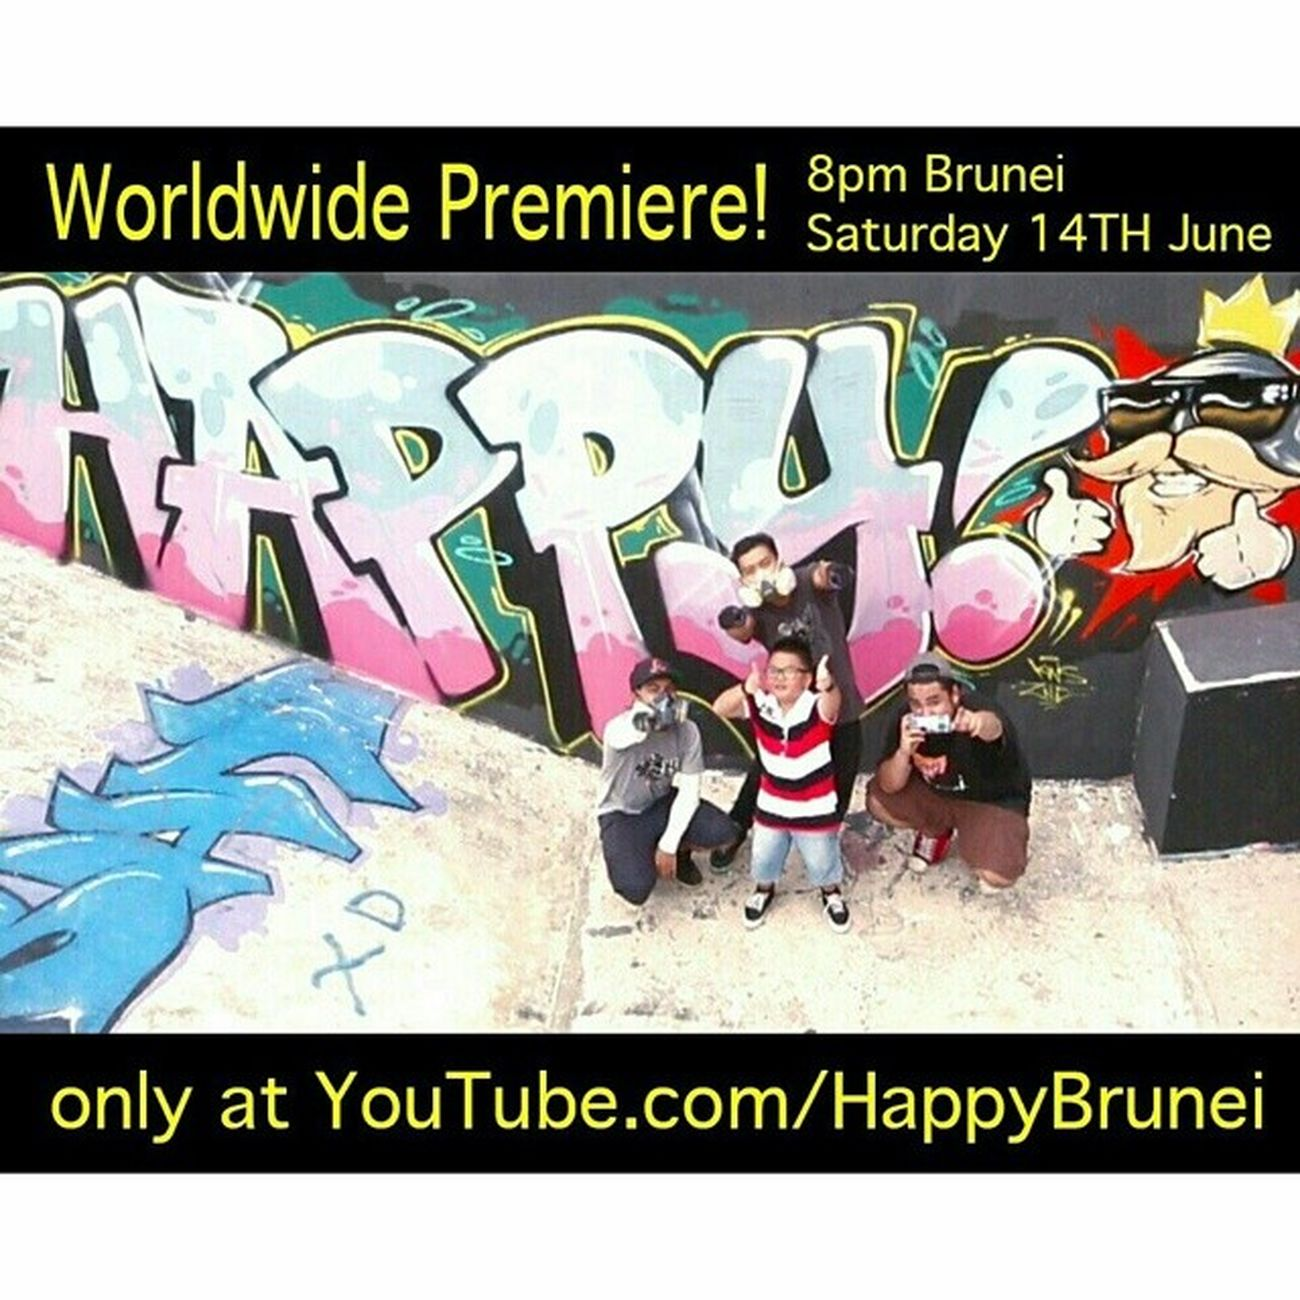 Are you ready for it? There's about less 5 hours to go so let the countdown begin! It'll be exclusively premiered on the YouTube page, so do subscribe to it now. See you soon folks! Wearehappybrunei HappyBrunei Brunei HappyBN